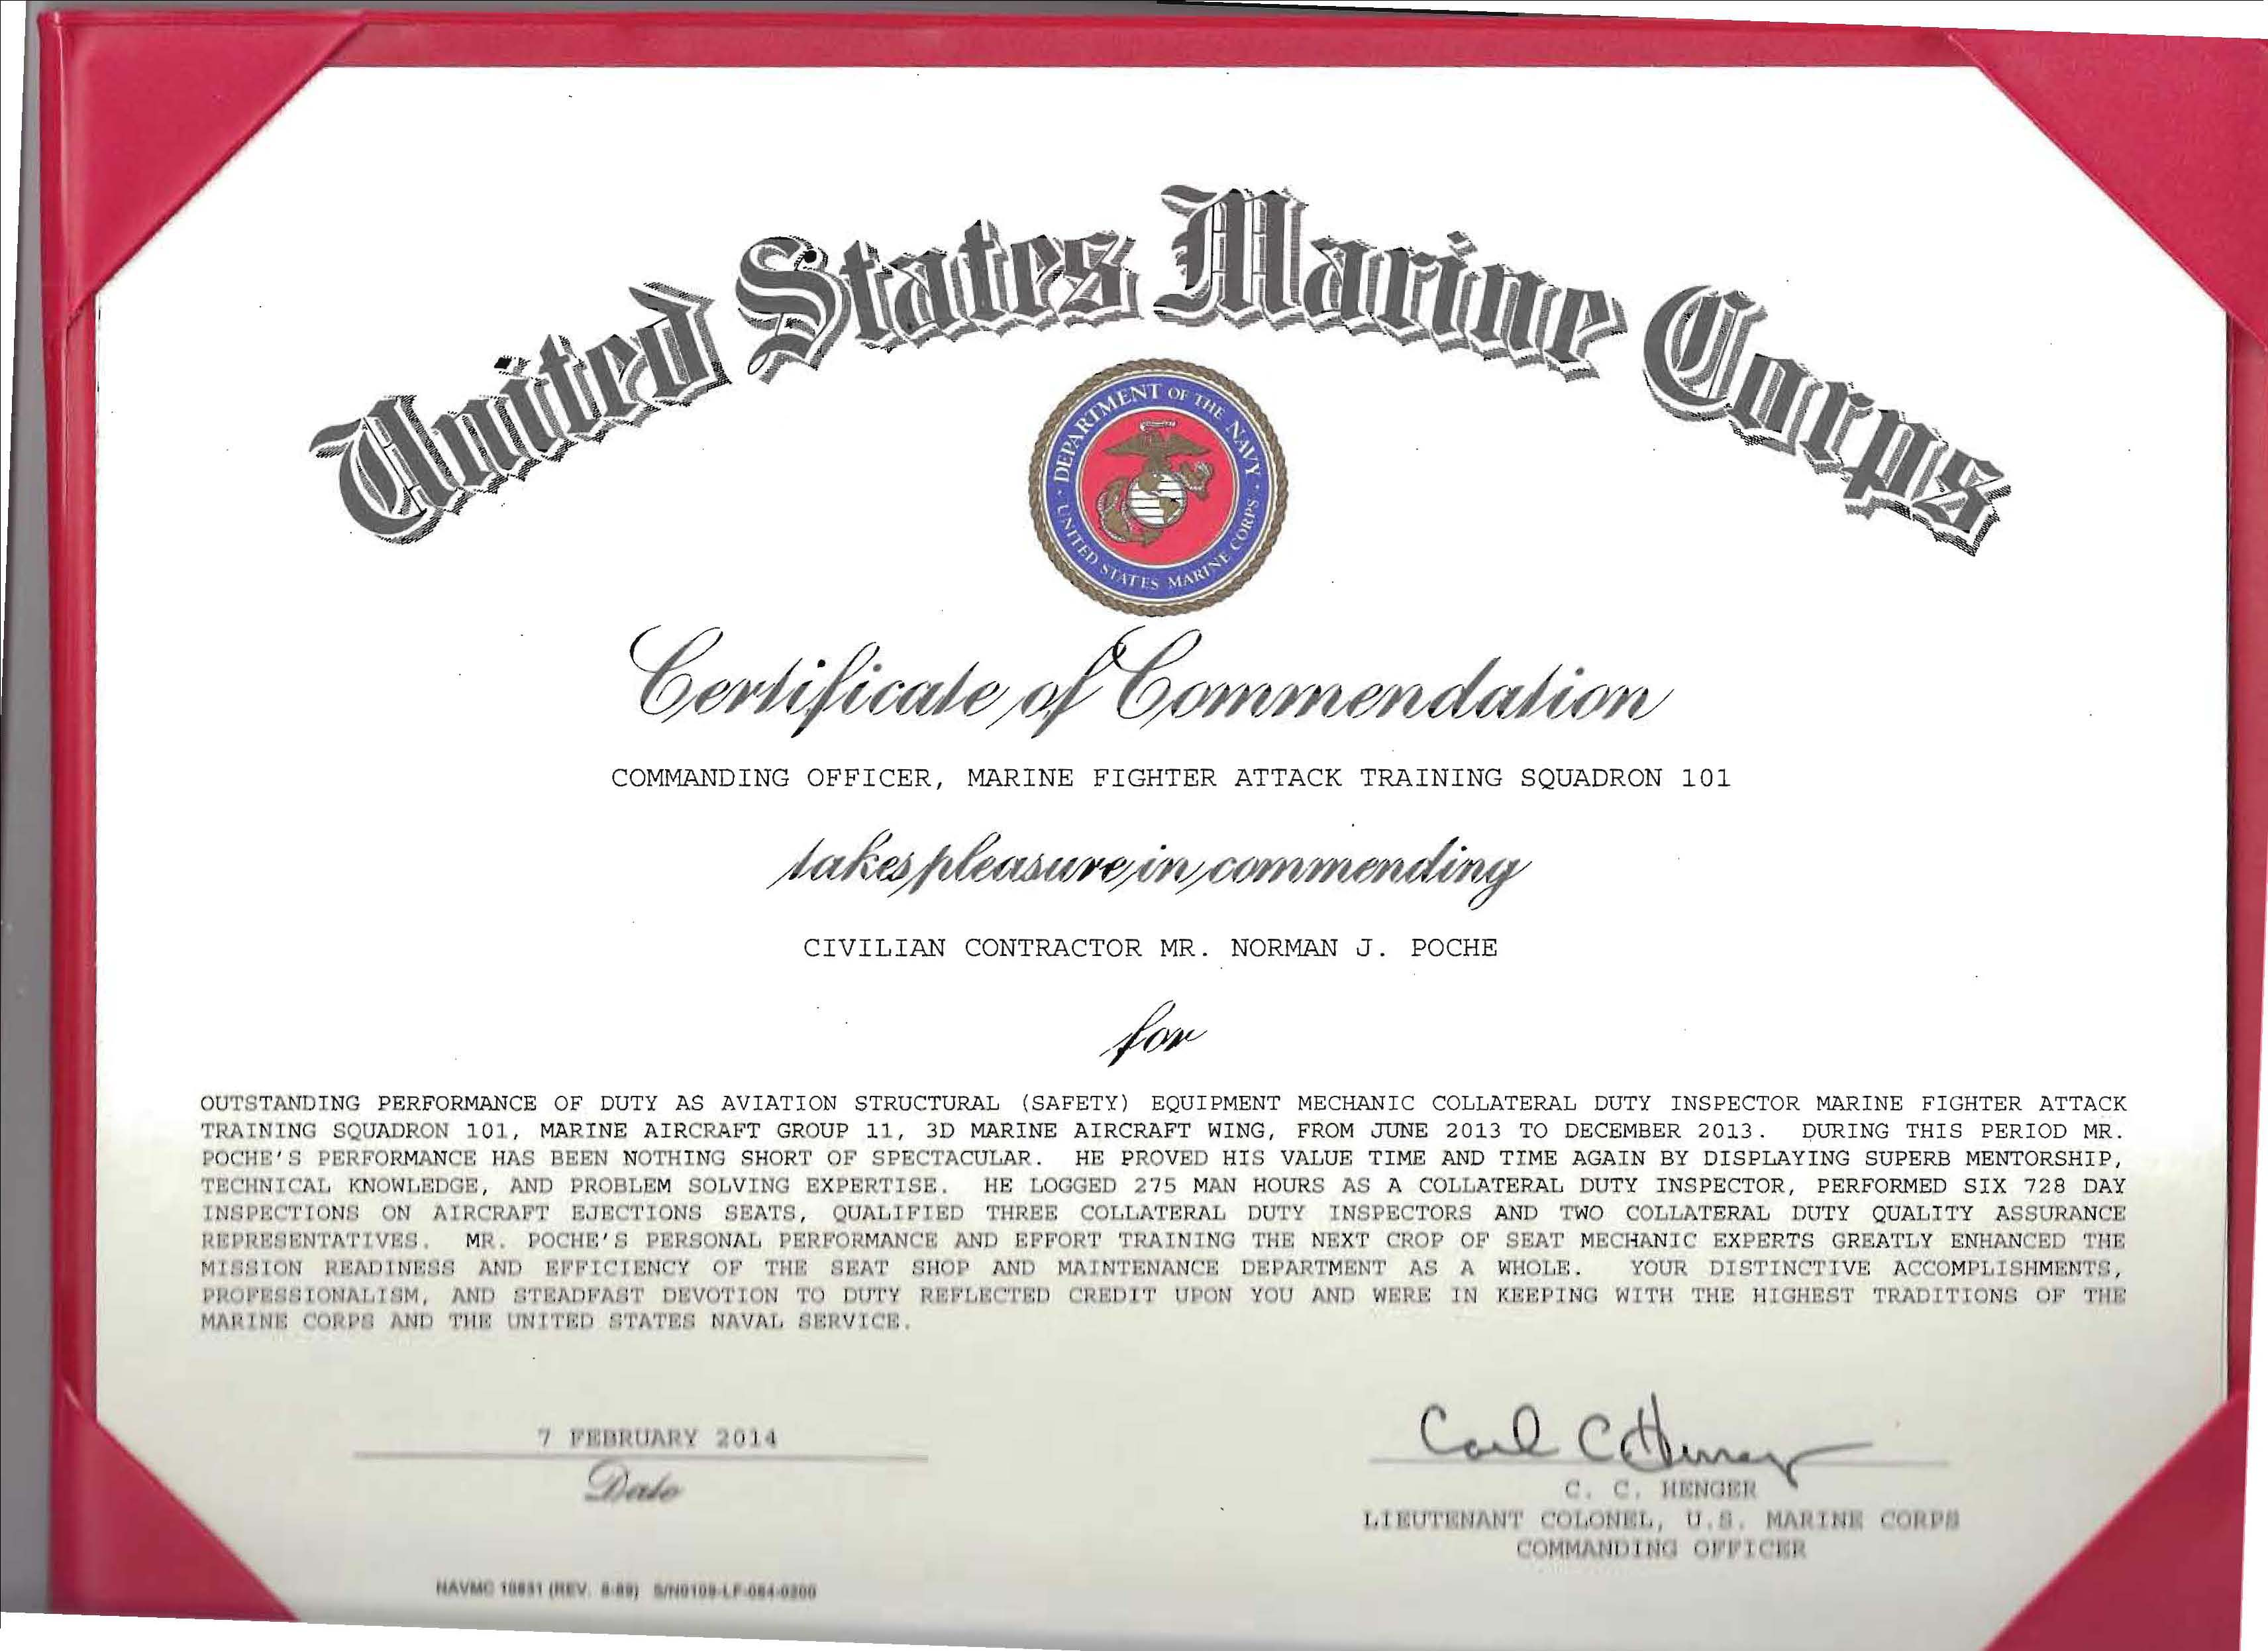 Usmc certificate of commendation template gallery templates usmc certificate of commendation template gallery templates usmc certificate of commendation template images templates usmc certificate 1betcityfo Images